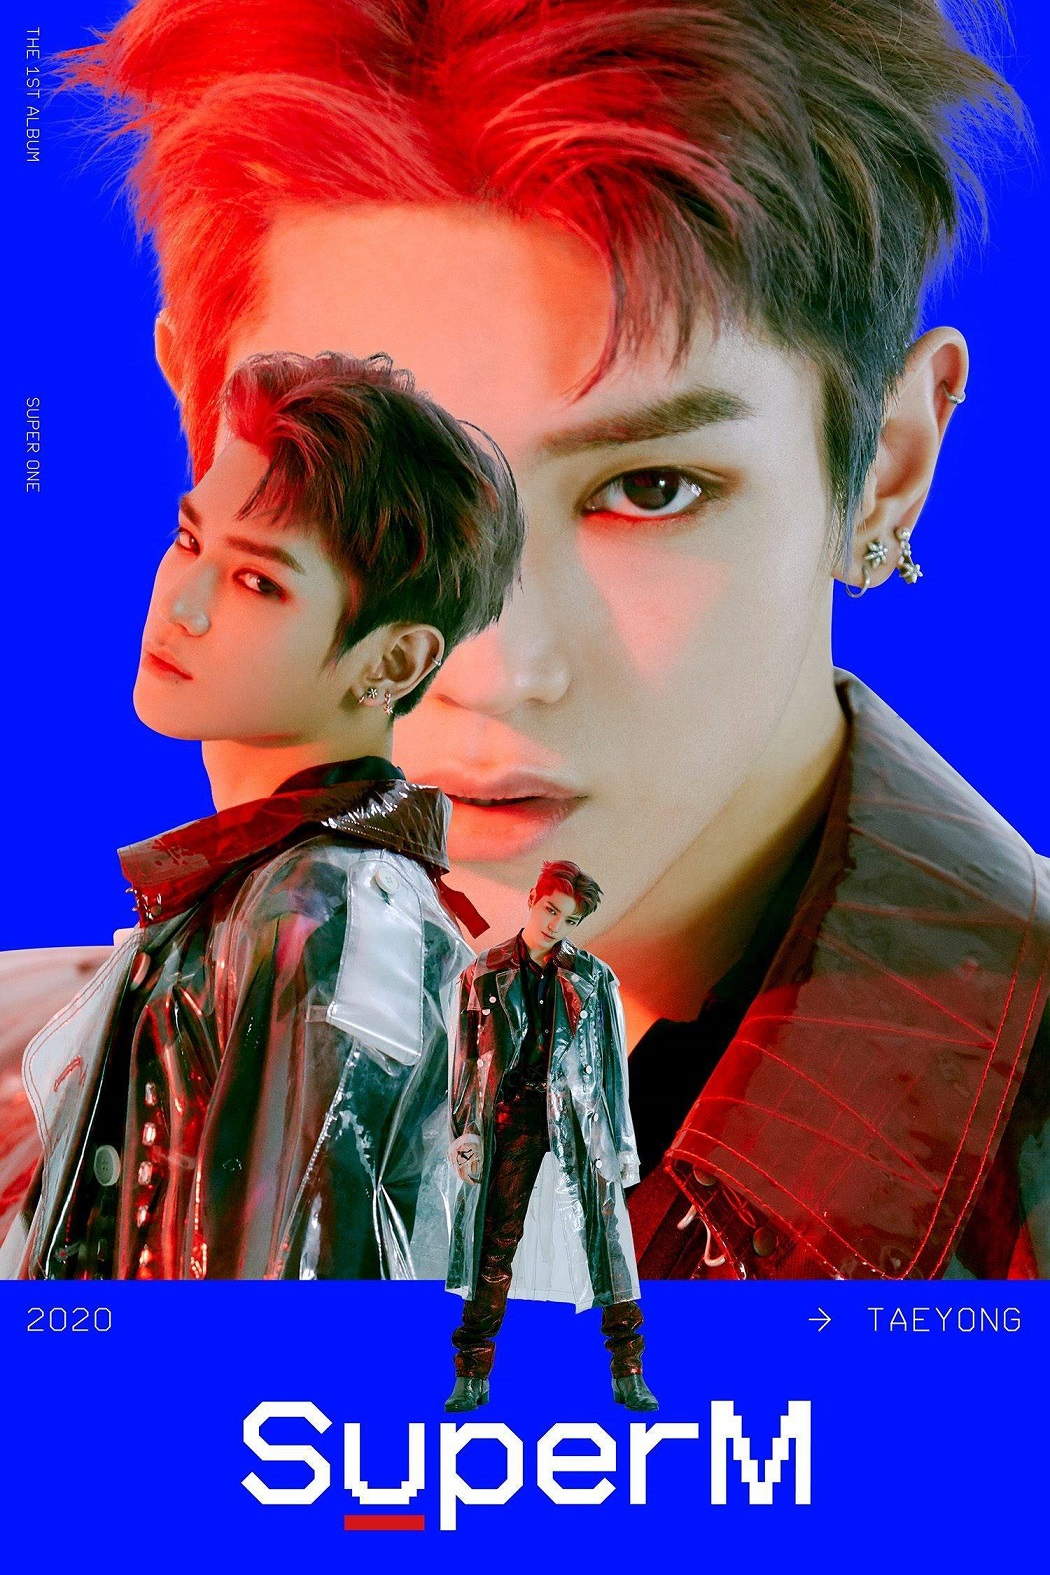 [TAEYONG] 'Super One'_Teaser Image 2